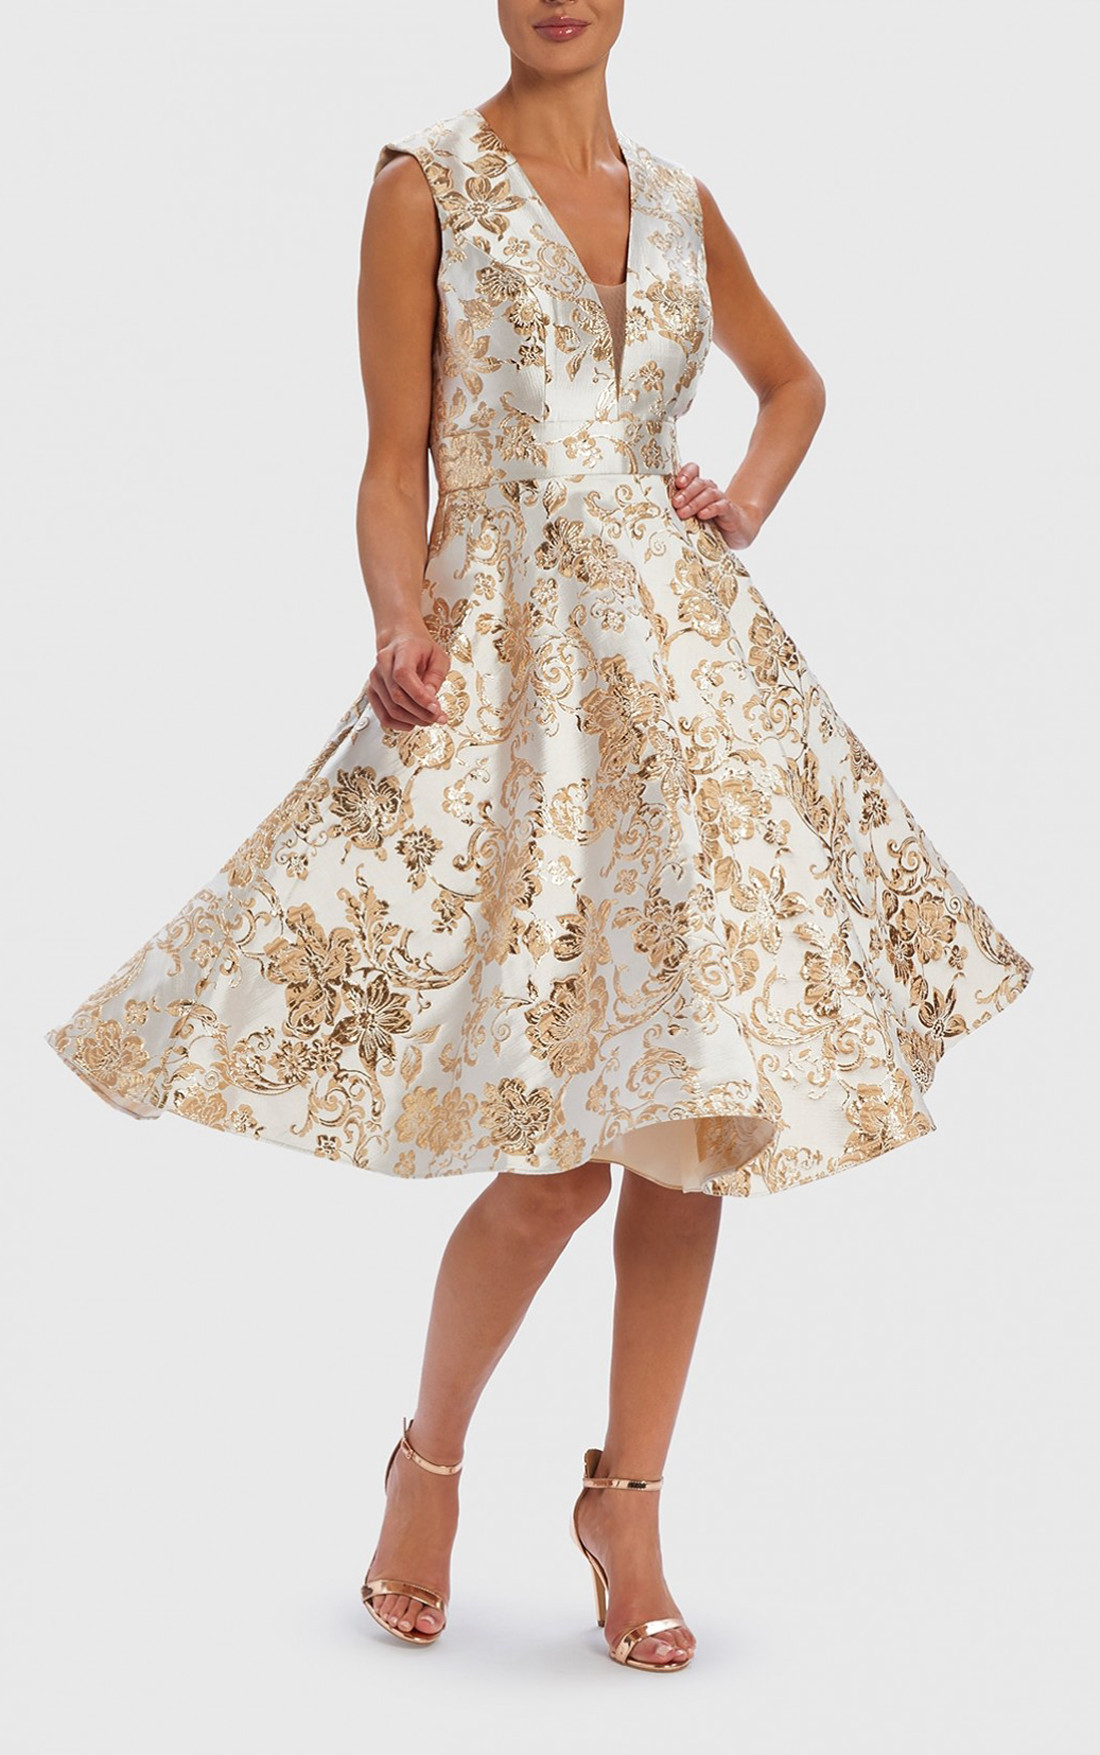 Forever Unique - Miranda White And Gold Floral Jacquard Skater Dress (AF0908)